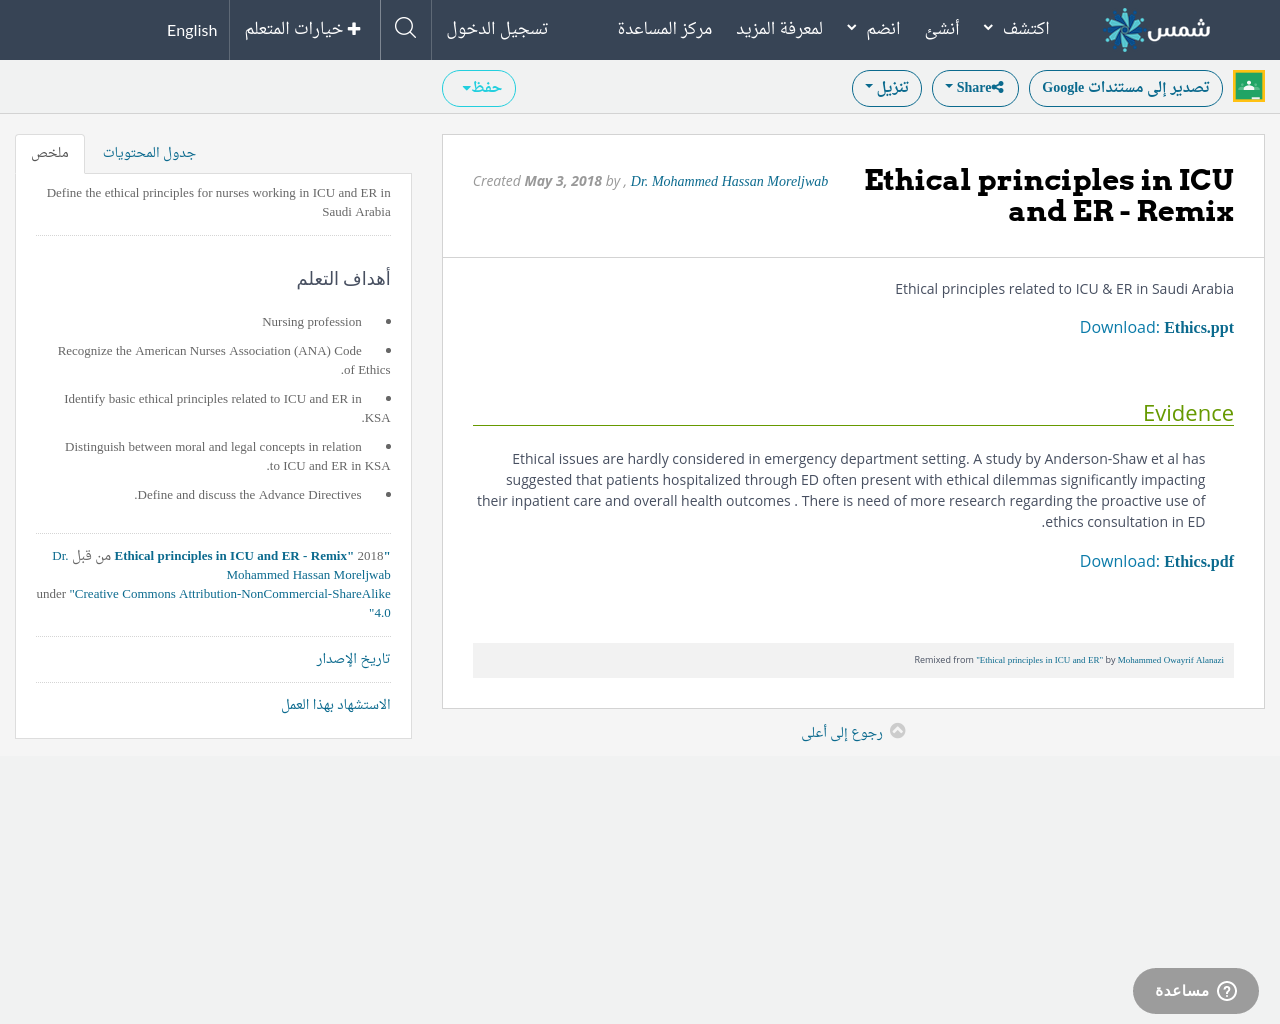 Ethical principles in ICU and ER - Remix | SHMS - Saudi OER